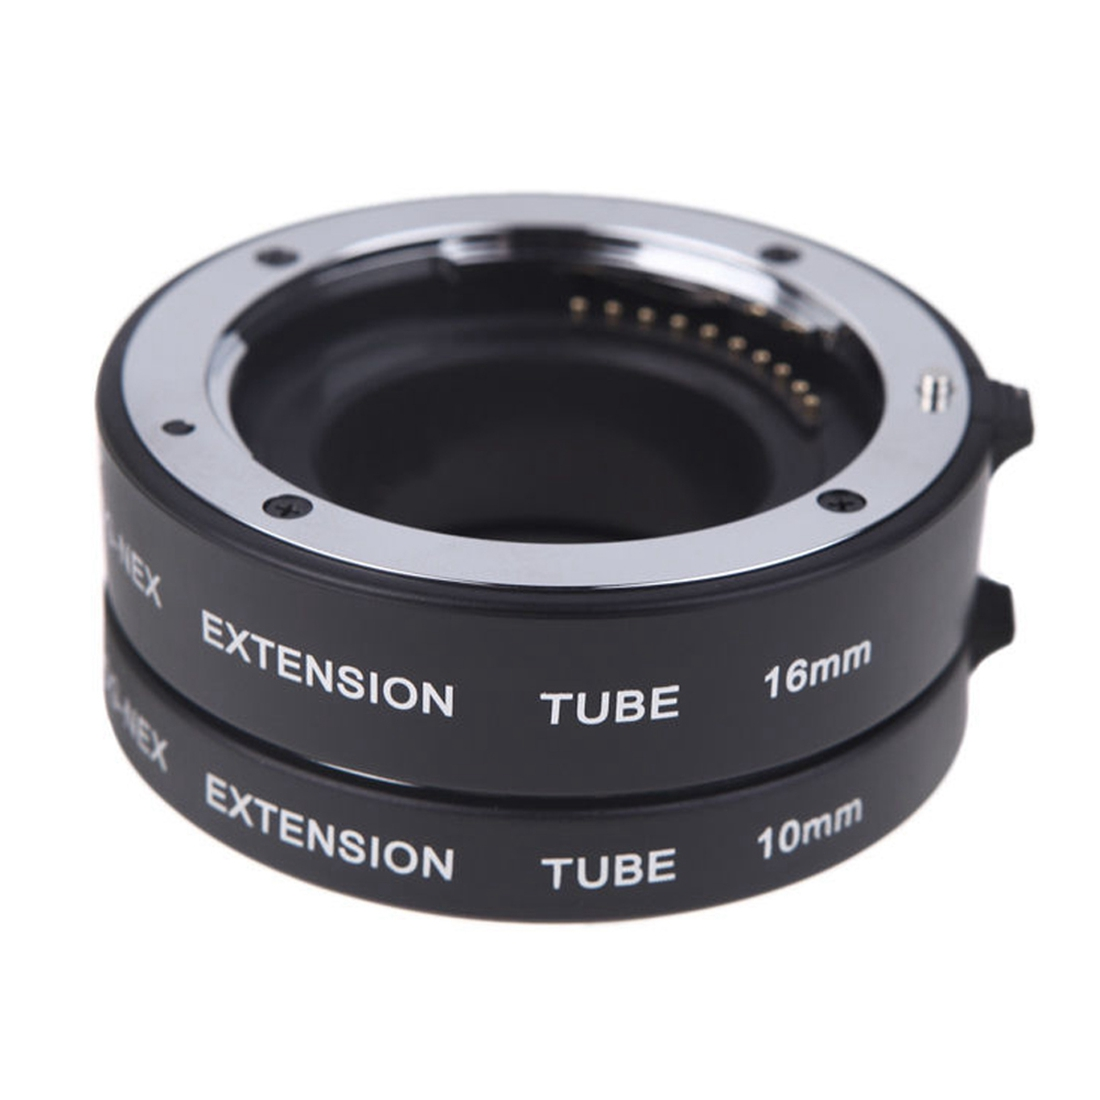 Macro Auto Focus Extension DG Tube Set Ring Metal Mount for Sony E mout NEX